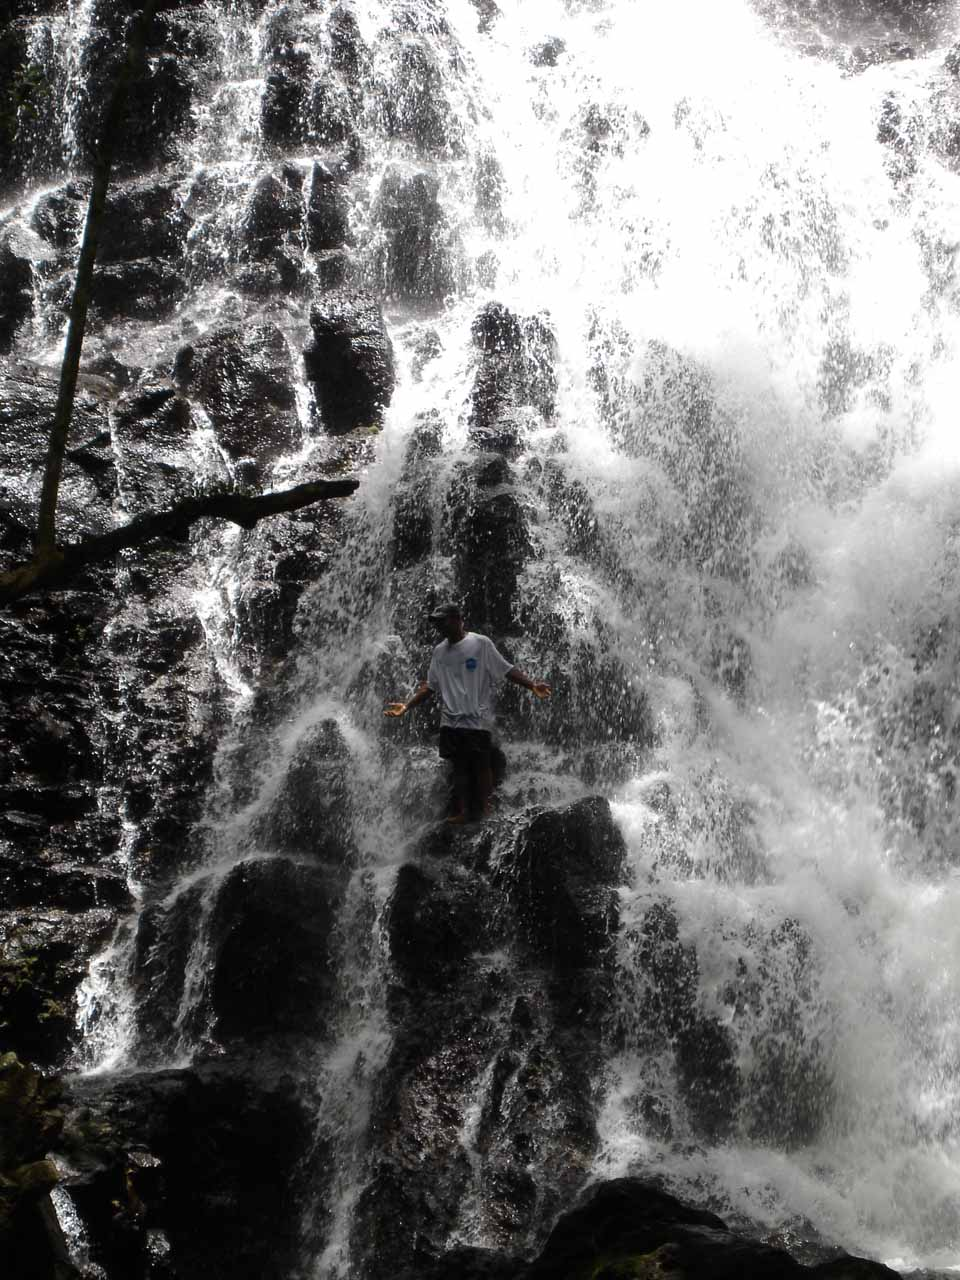 Our guide standing within the falls